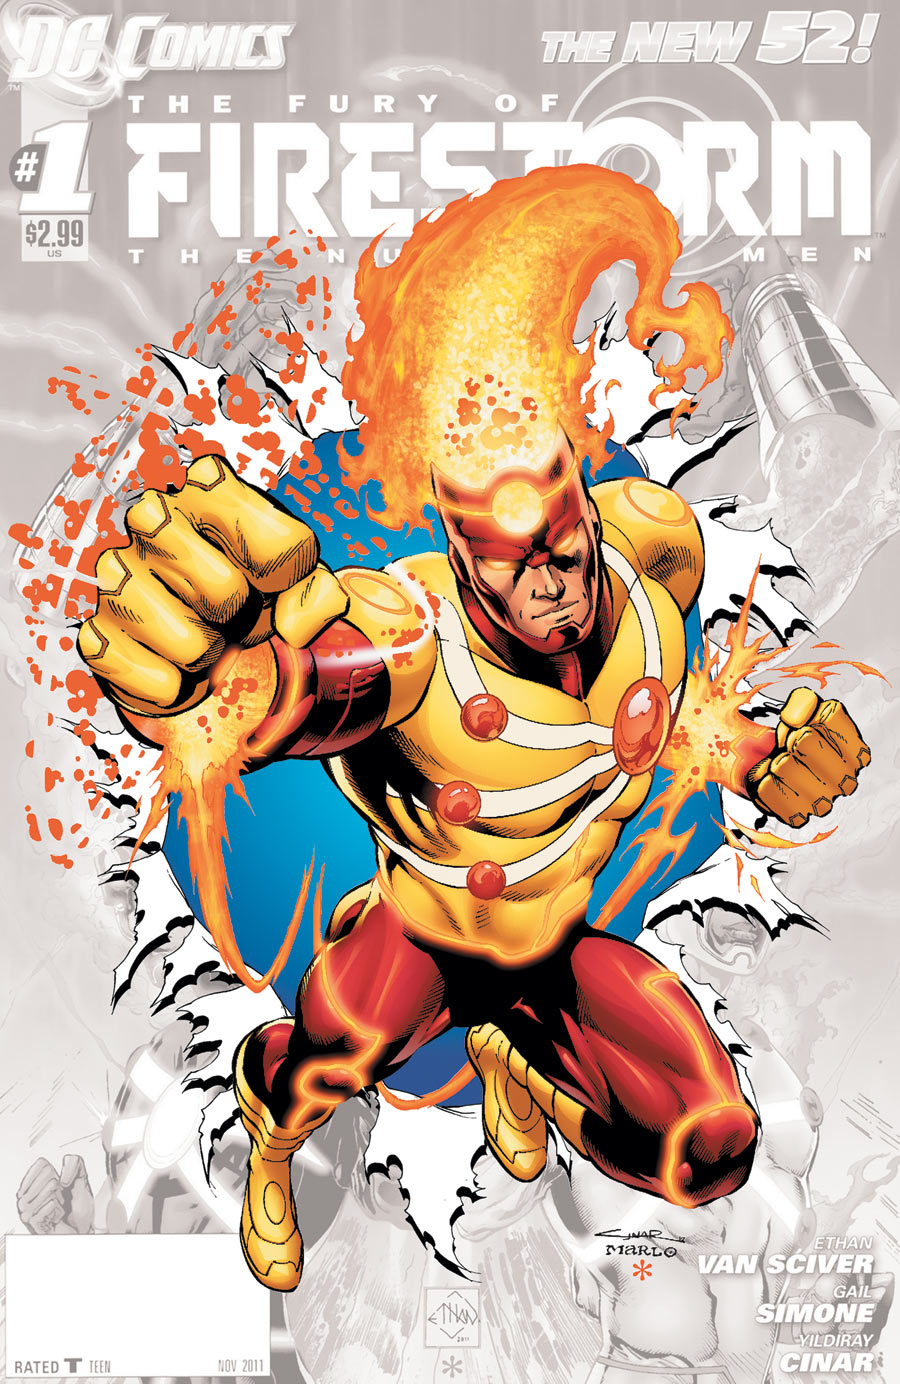 Fury of Firestorm: The Nuclear Man #0 cover by Yildiray Cinar &amp; Marlo Alquiza